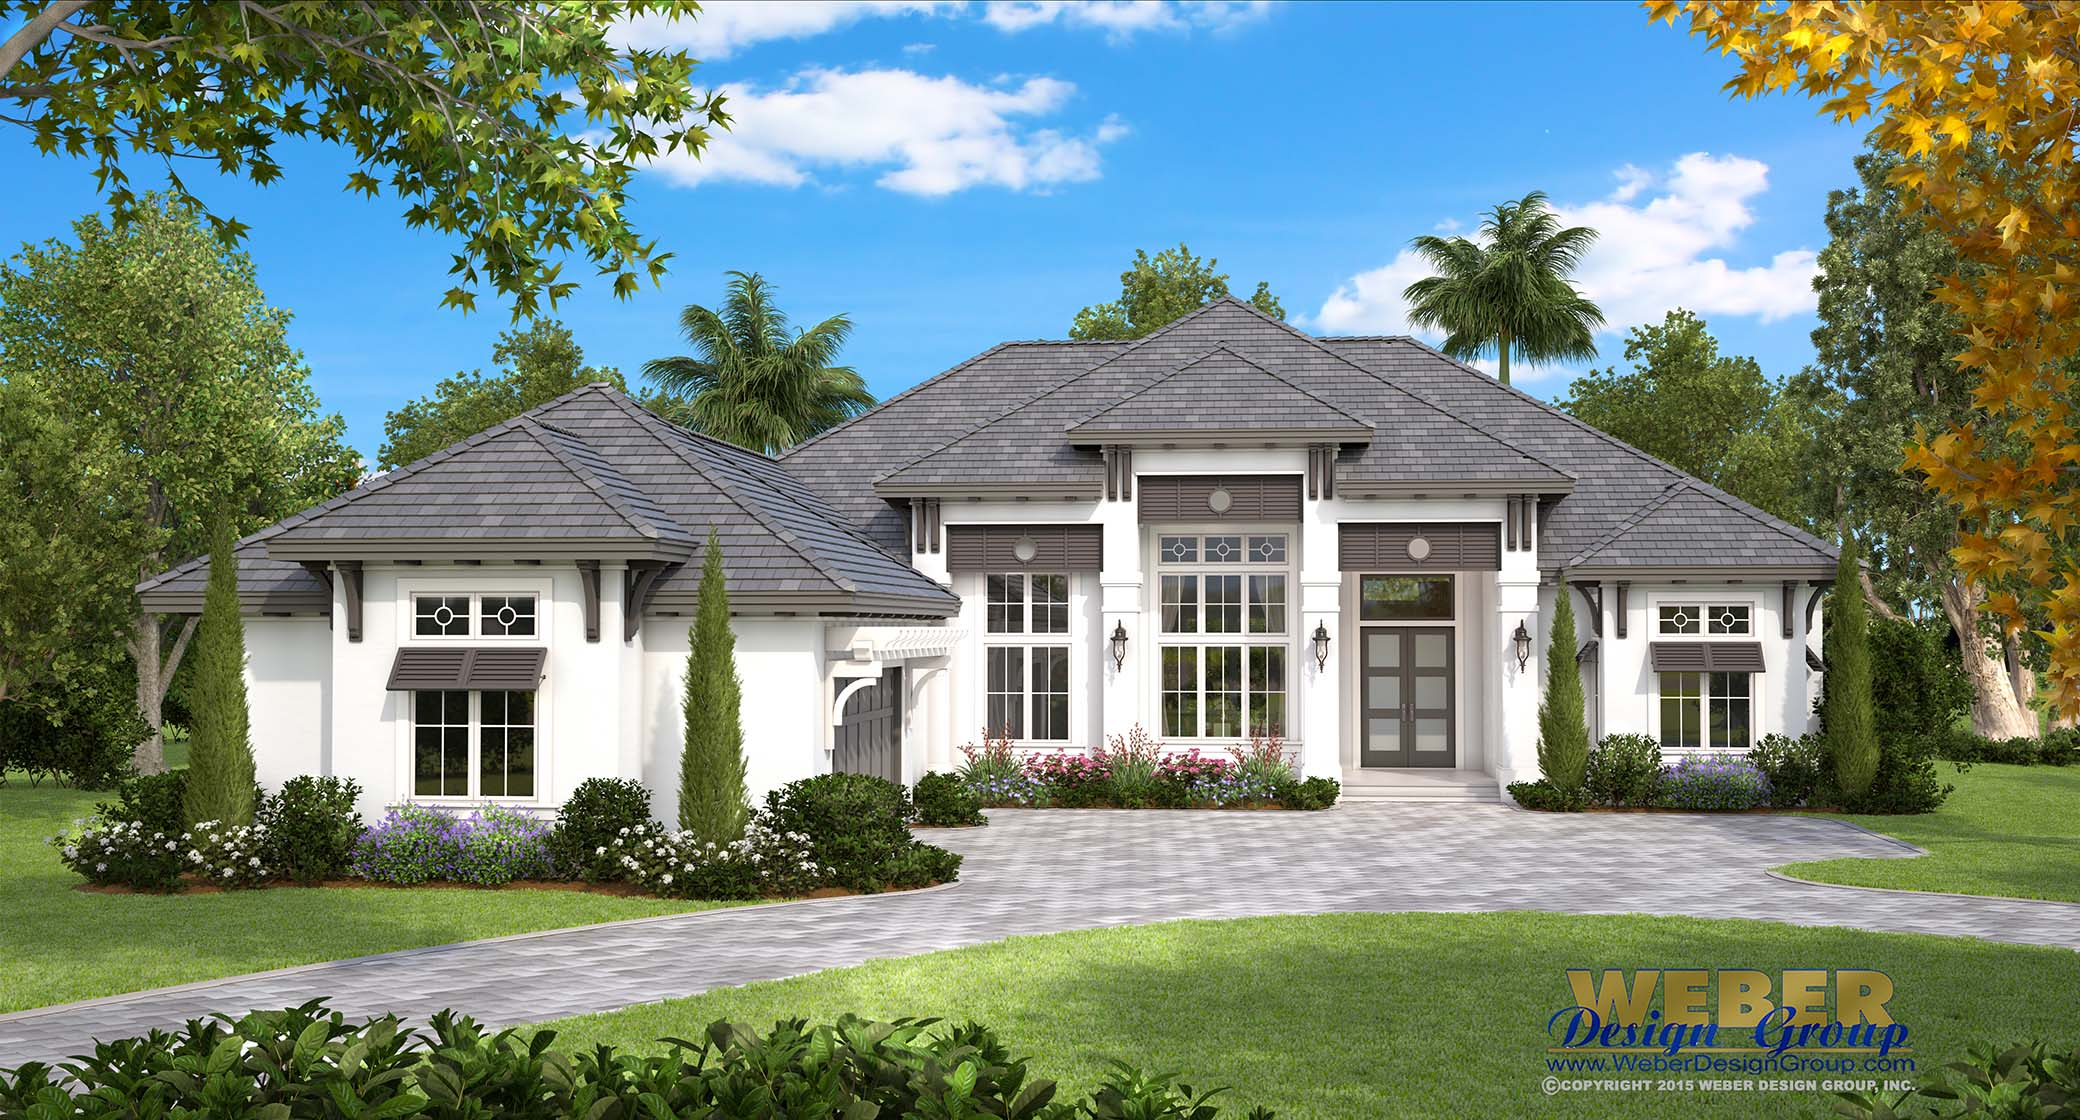 West indies home design st lucia model weber design group for West indies house plans